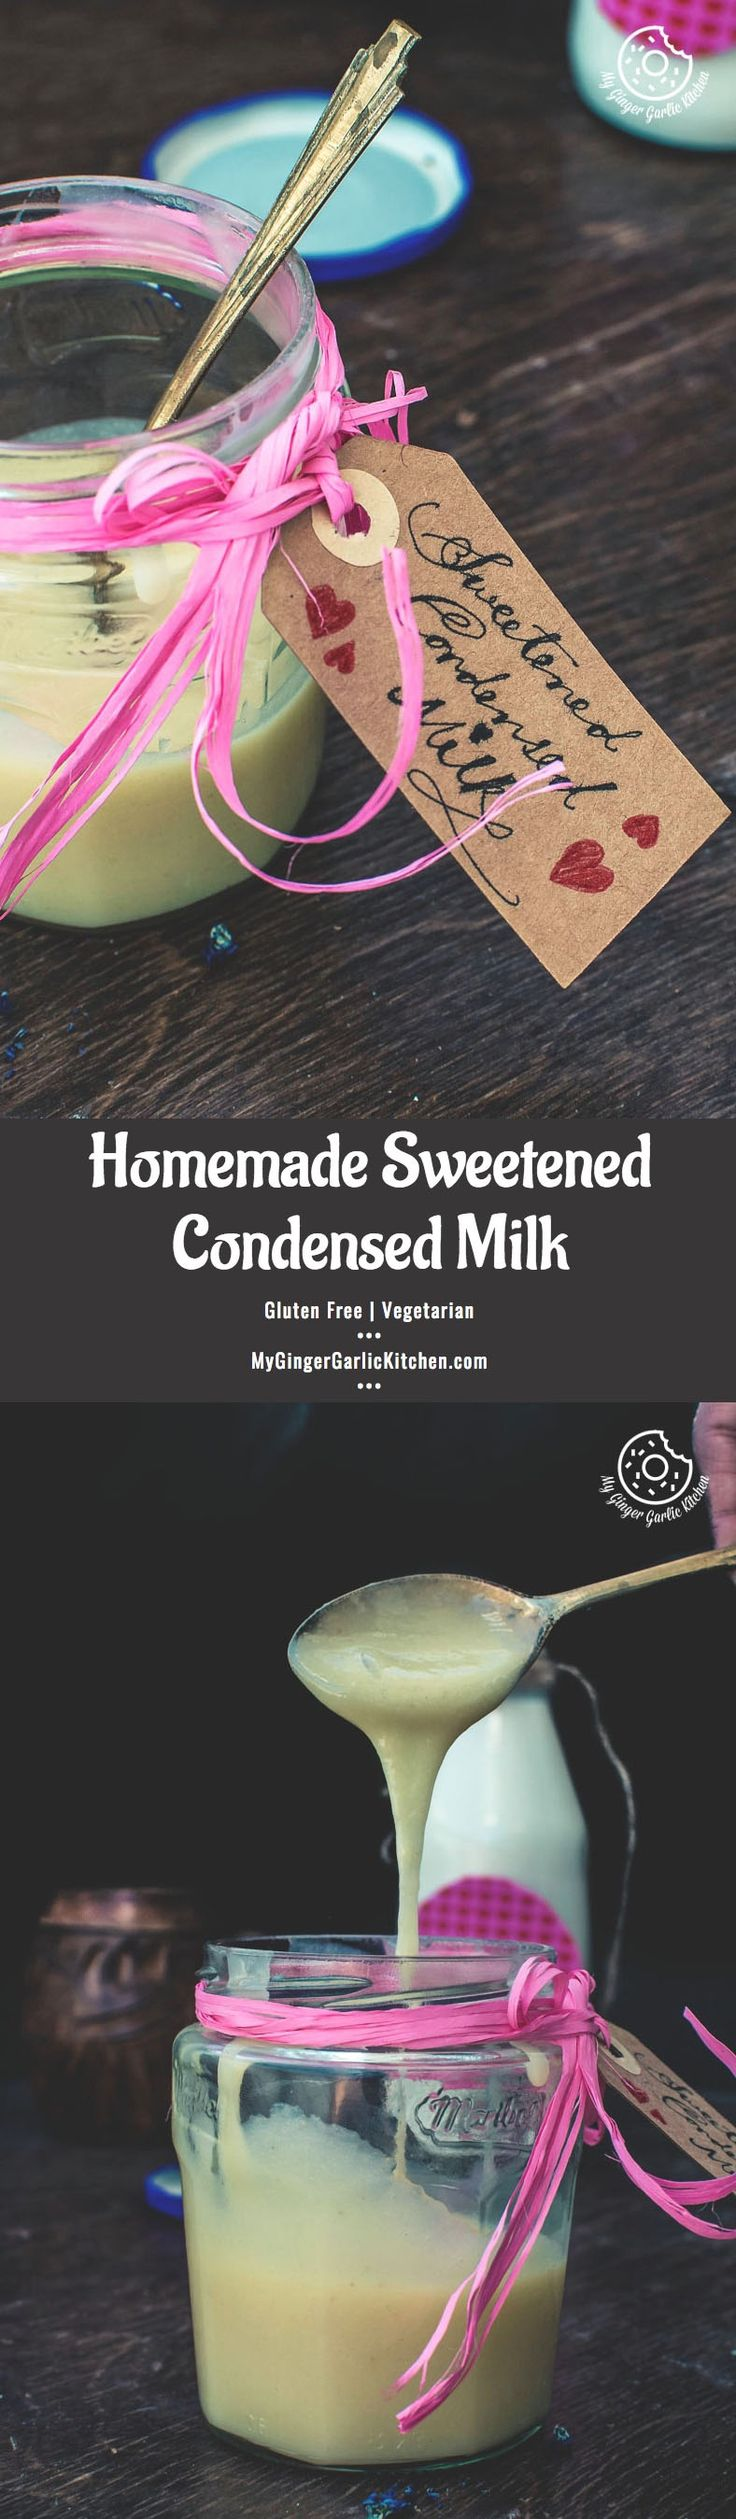 This Homemade Sweetened Condensed Milk recipe makes a delightful, creamy and smooth condensed milk— just the same which you get ready-made from the store. The good thing is that this version is made from scratch and it requires only 3 ingredients. Yes, you can make your own sweetened condensed milk which can be used in your cakes, desserts, ice creams, coffee, and more! From: mygingergarlickitchen.com #Dessert #Glutenfree #Vegetarian #Baking #Milk #Sugar